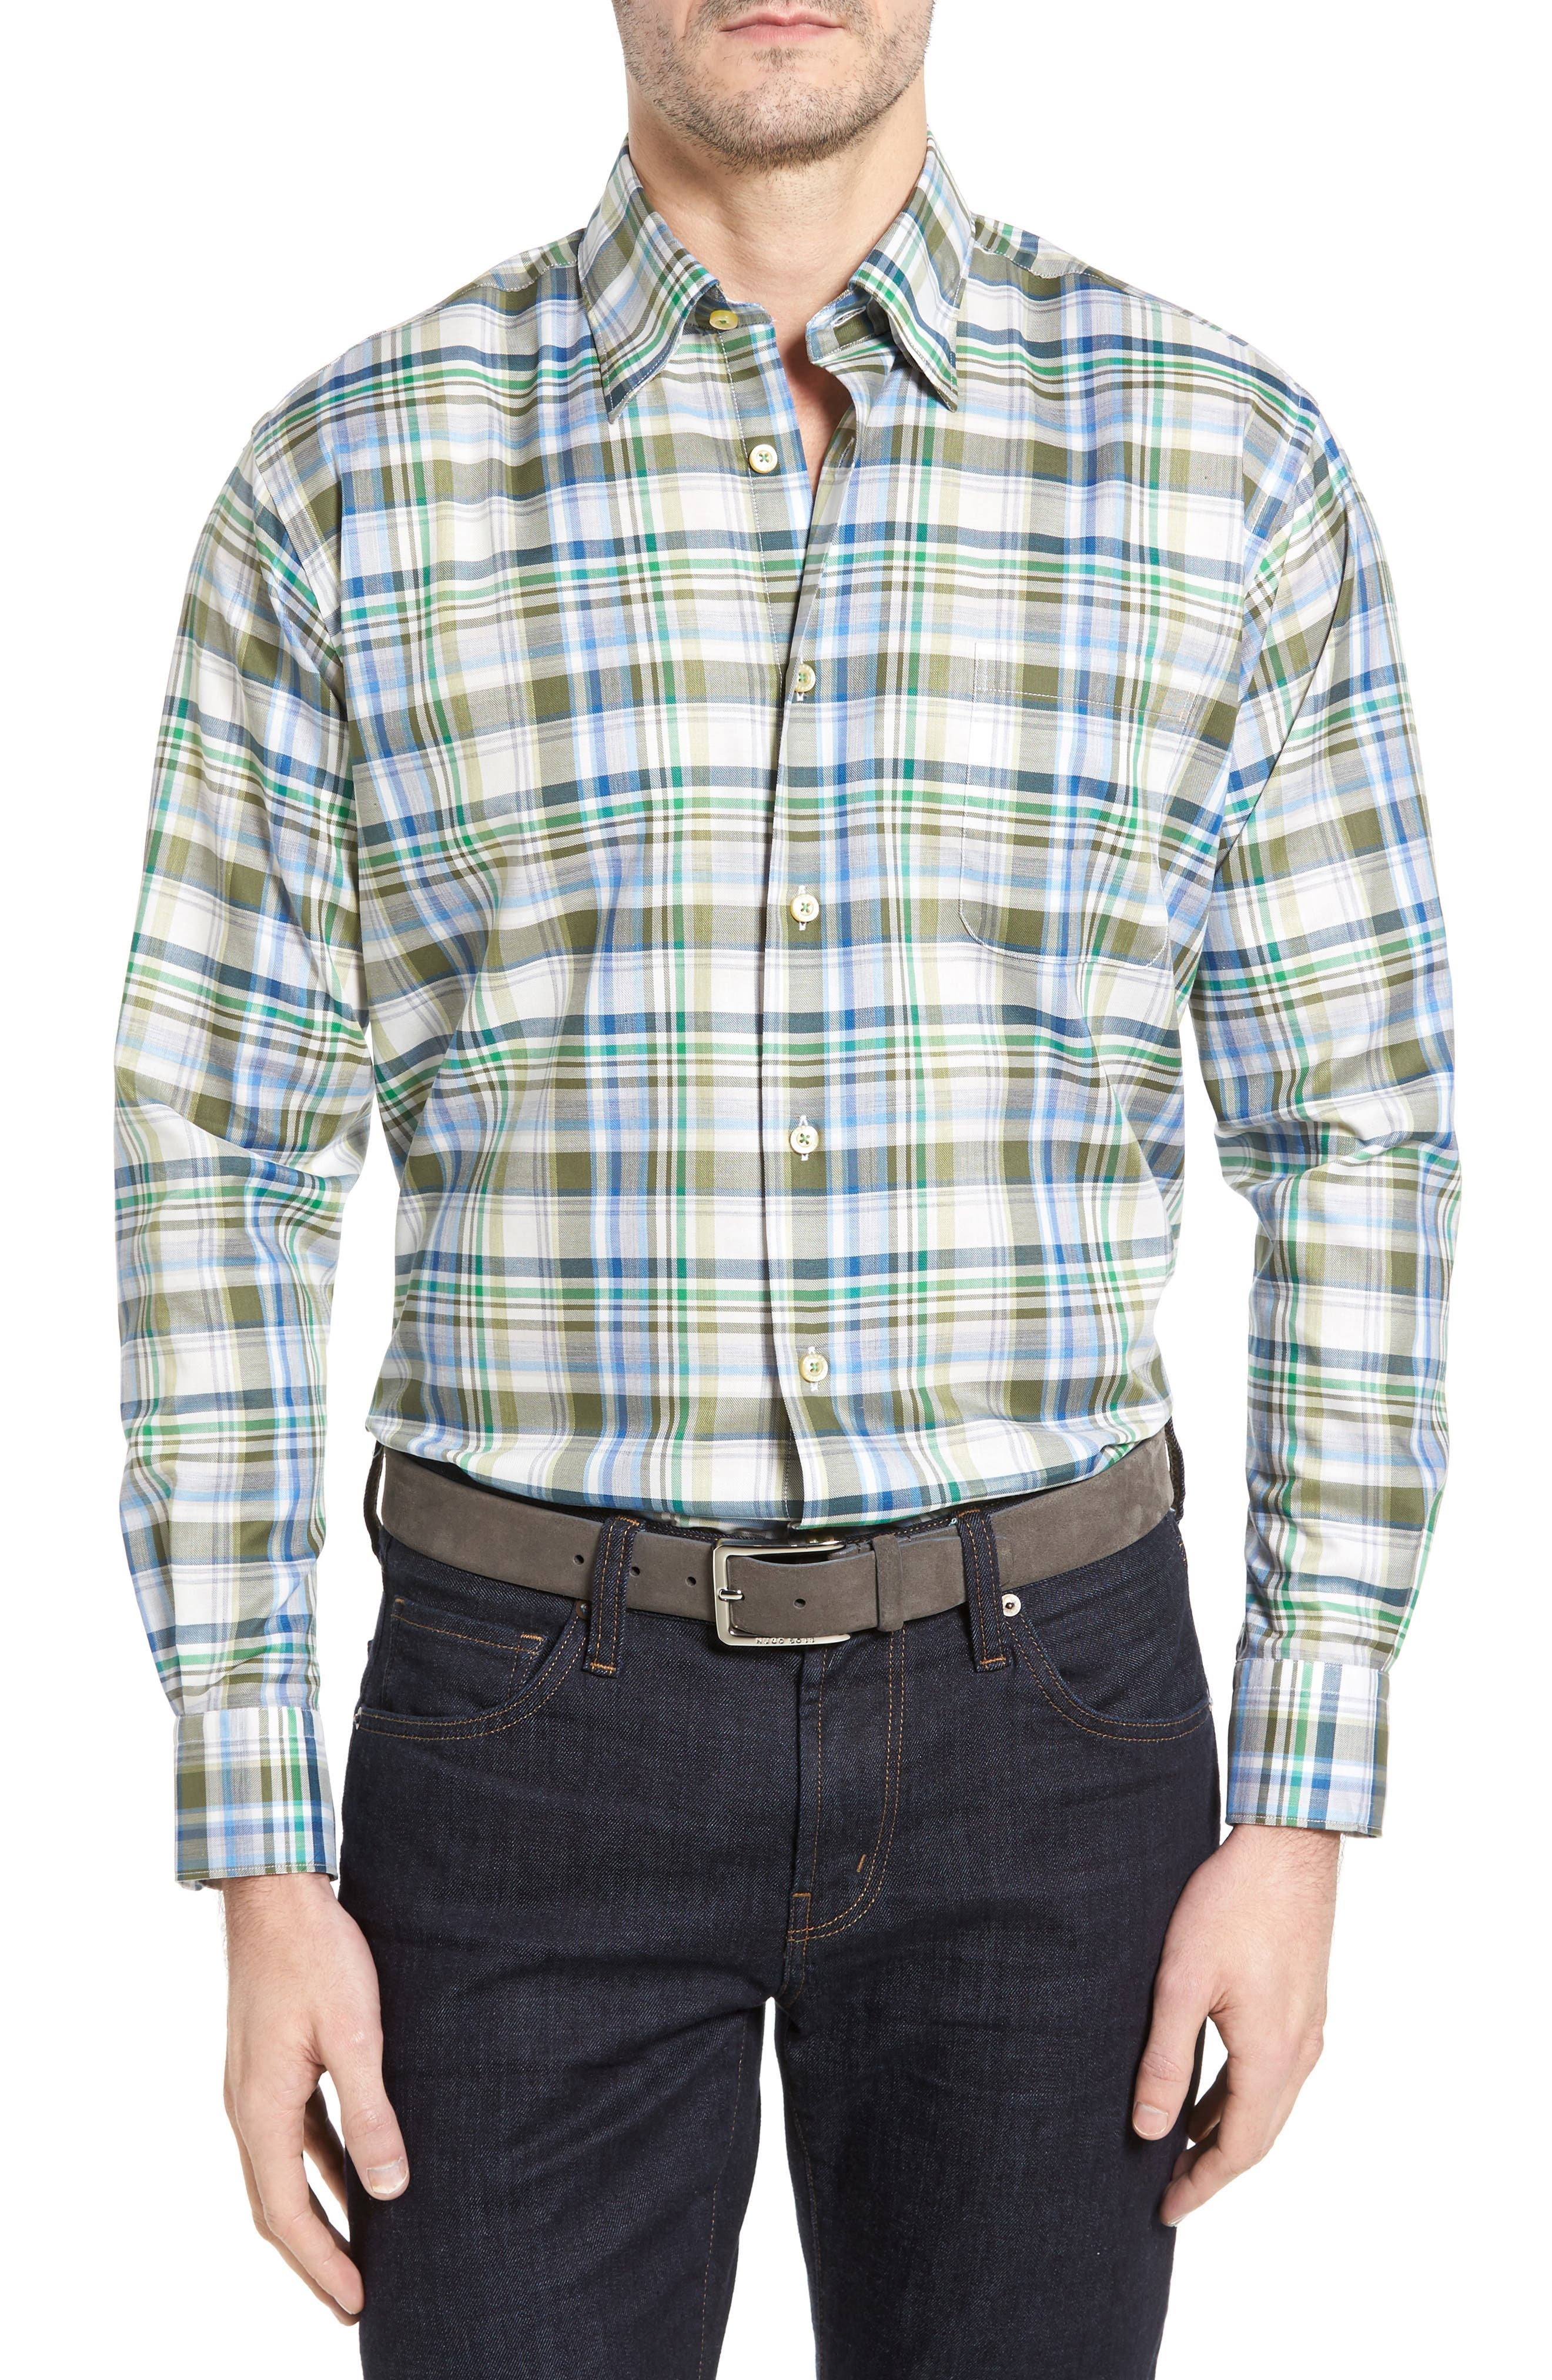 Anderson Classic Fit Plaid Micro Twill Sport Shirt,                         Main,                         color, Green